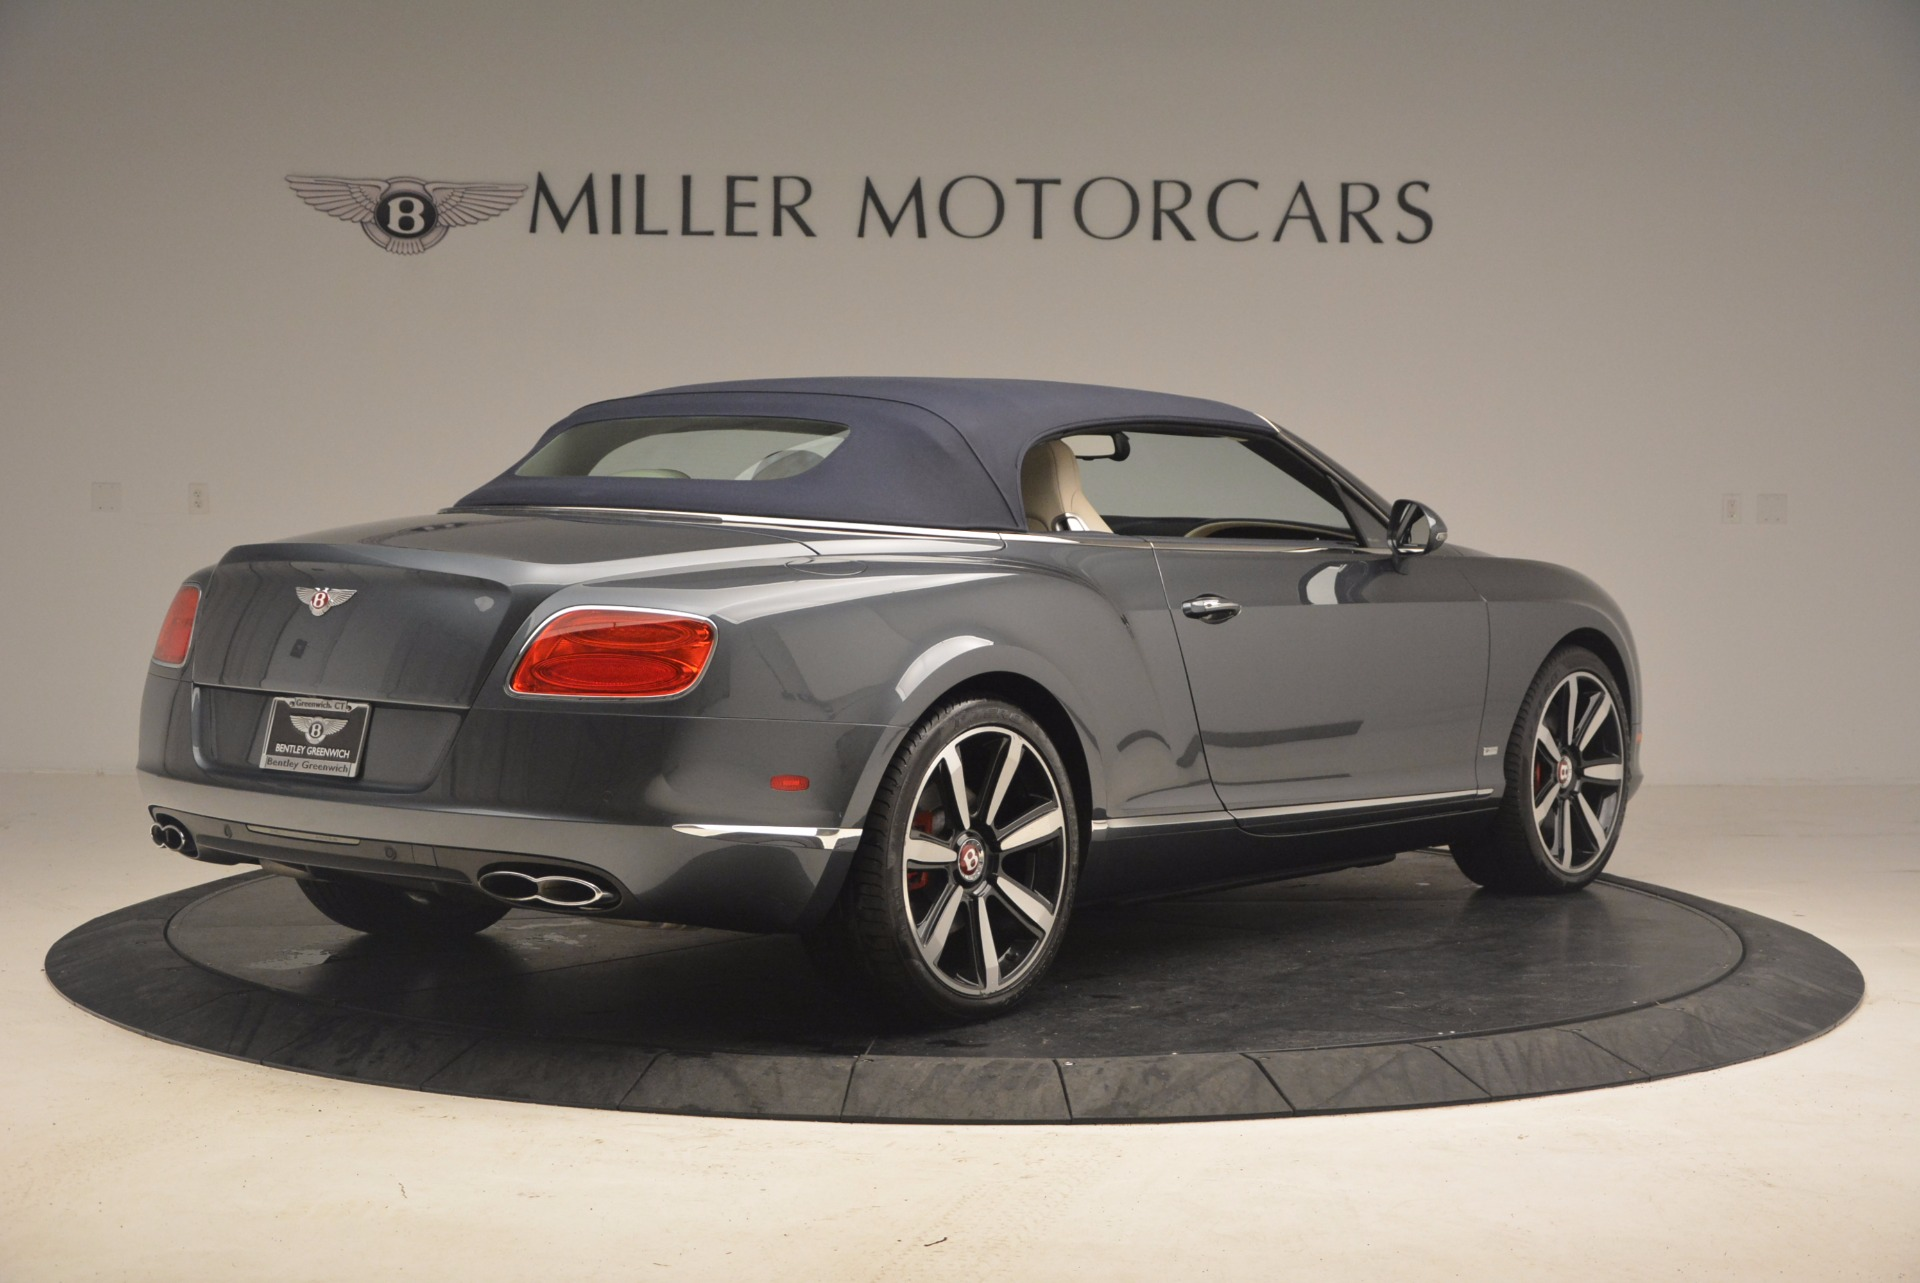 Used 2013 Bentley Continental GT V8 Le Mans Edition, 1 of 48 For Sale In Greenwich, CT 1288_p21